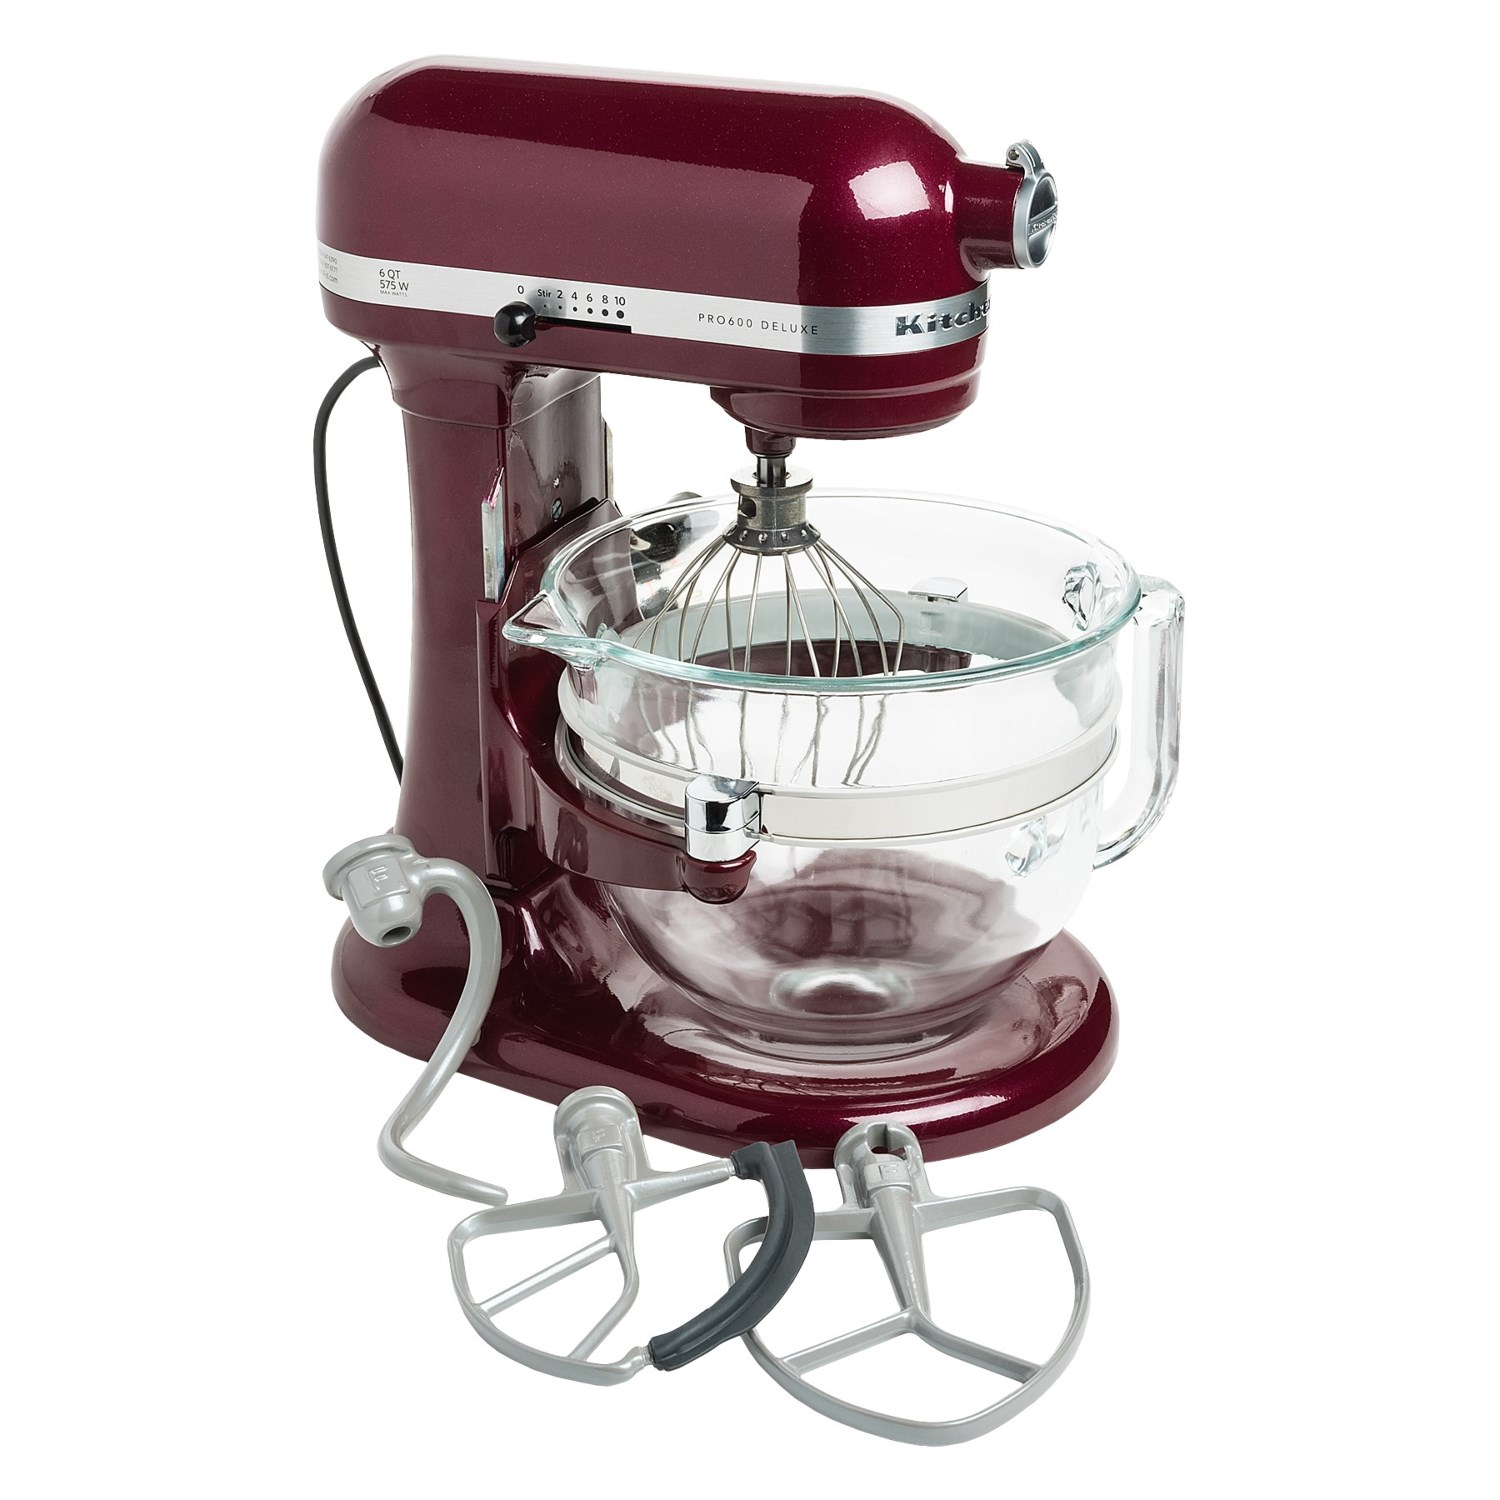 Kitchenaid Pro 600 DLX Bowl-Lift Stand Mixer - 6 qt. - Save 37%